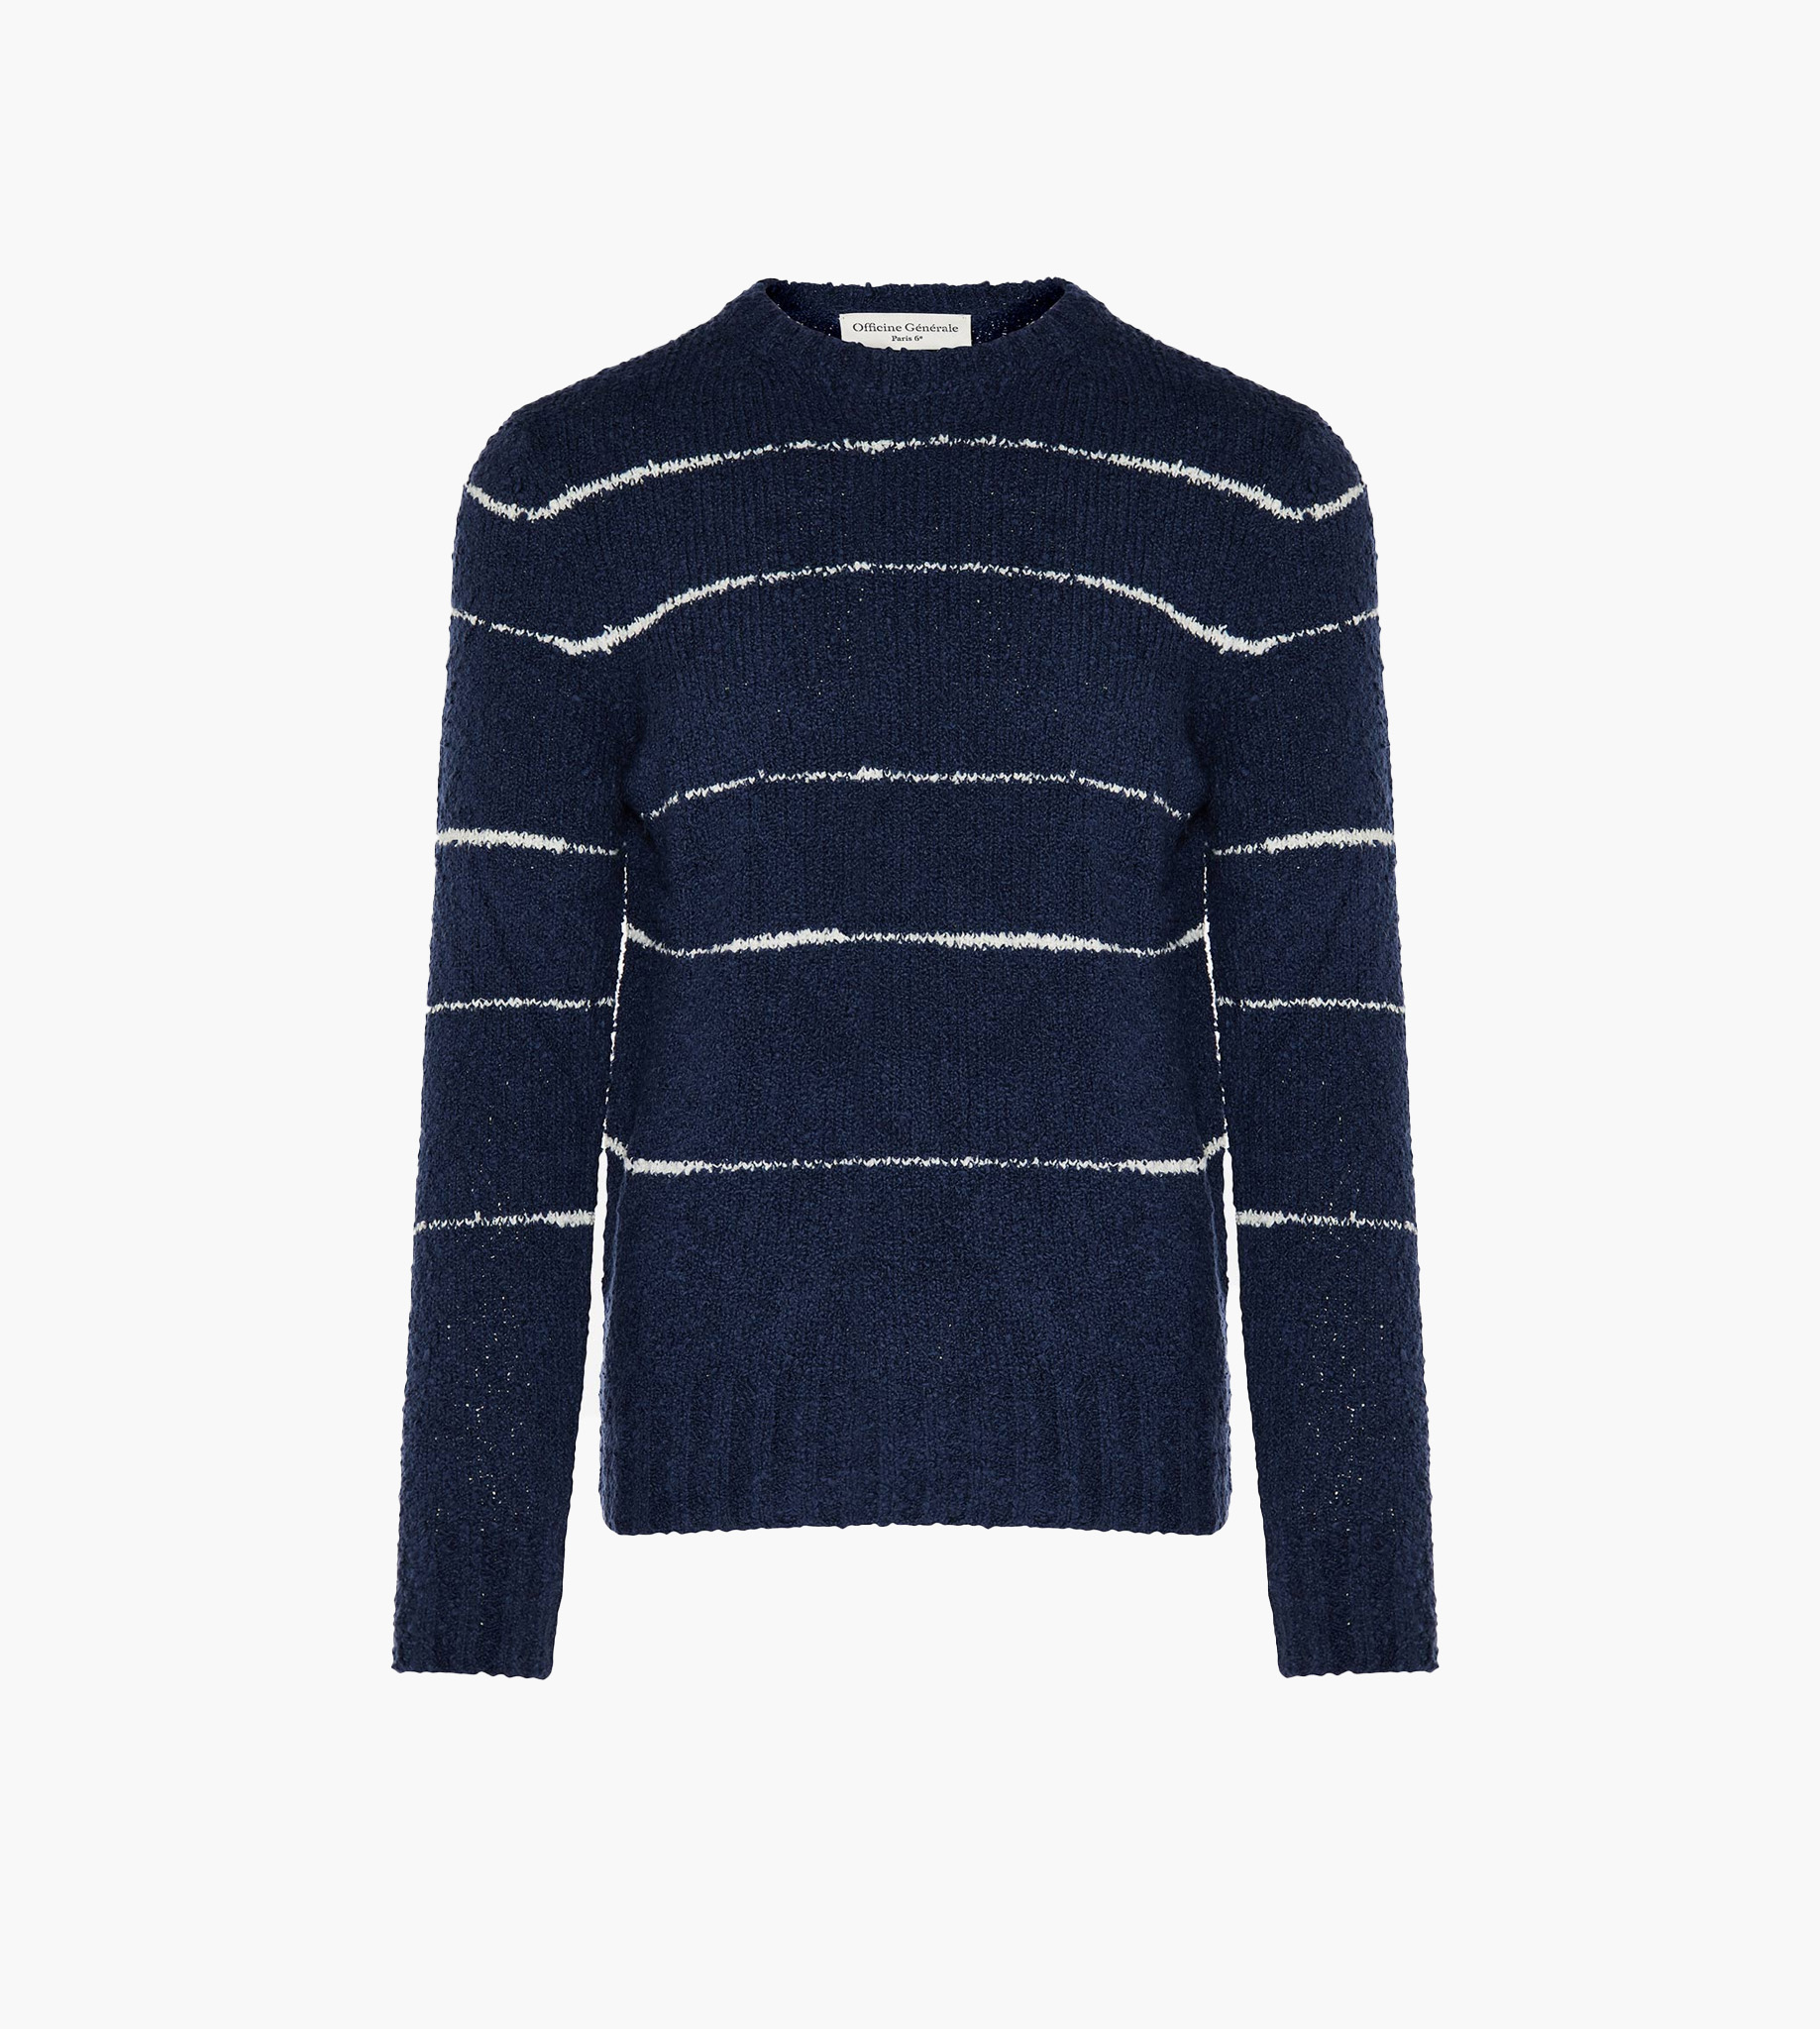 Marco sweater